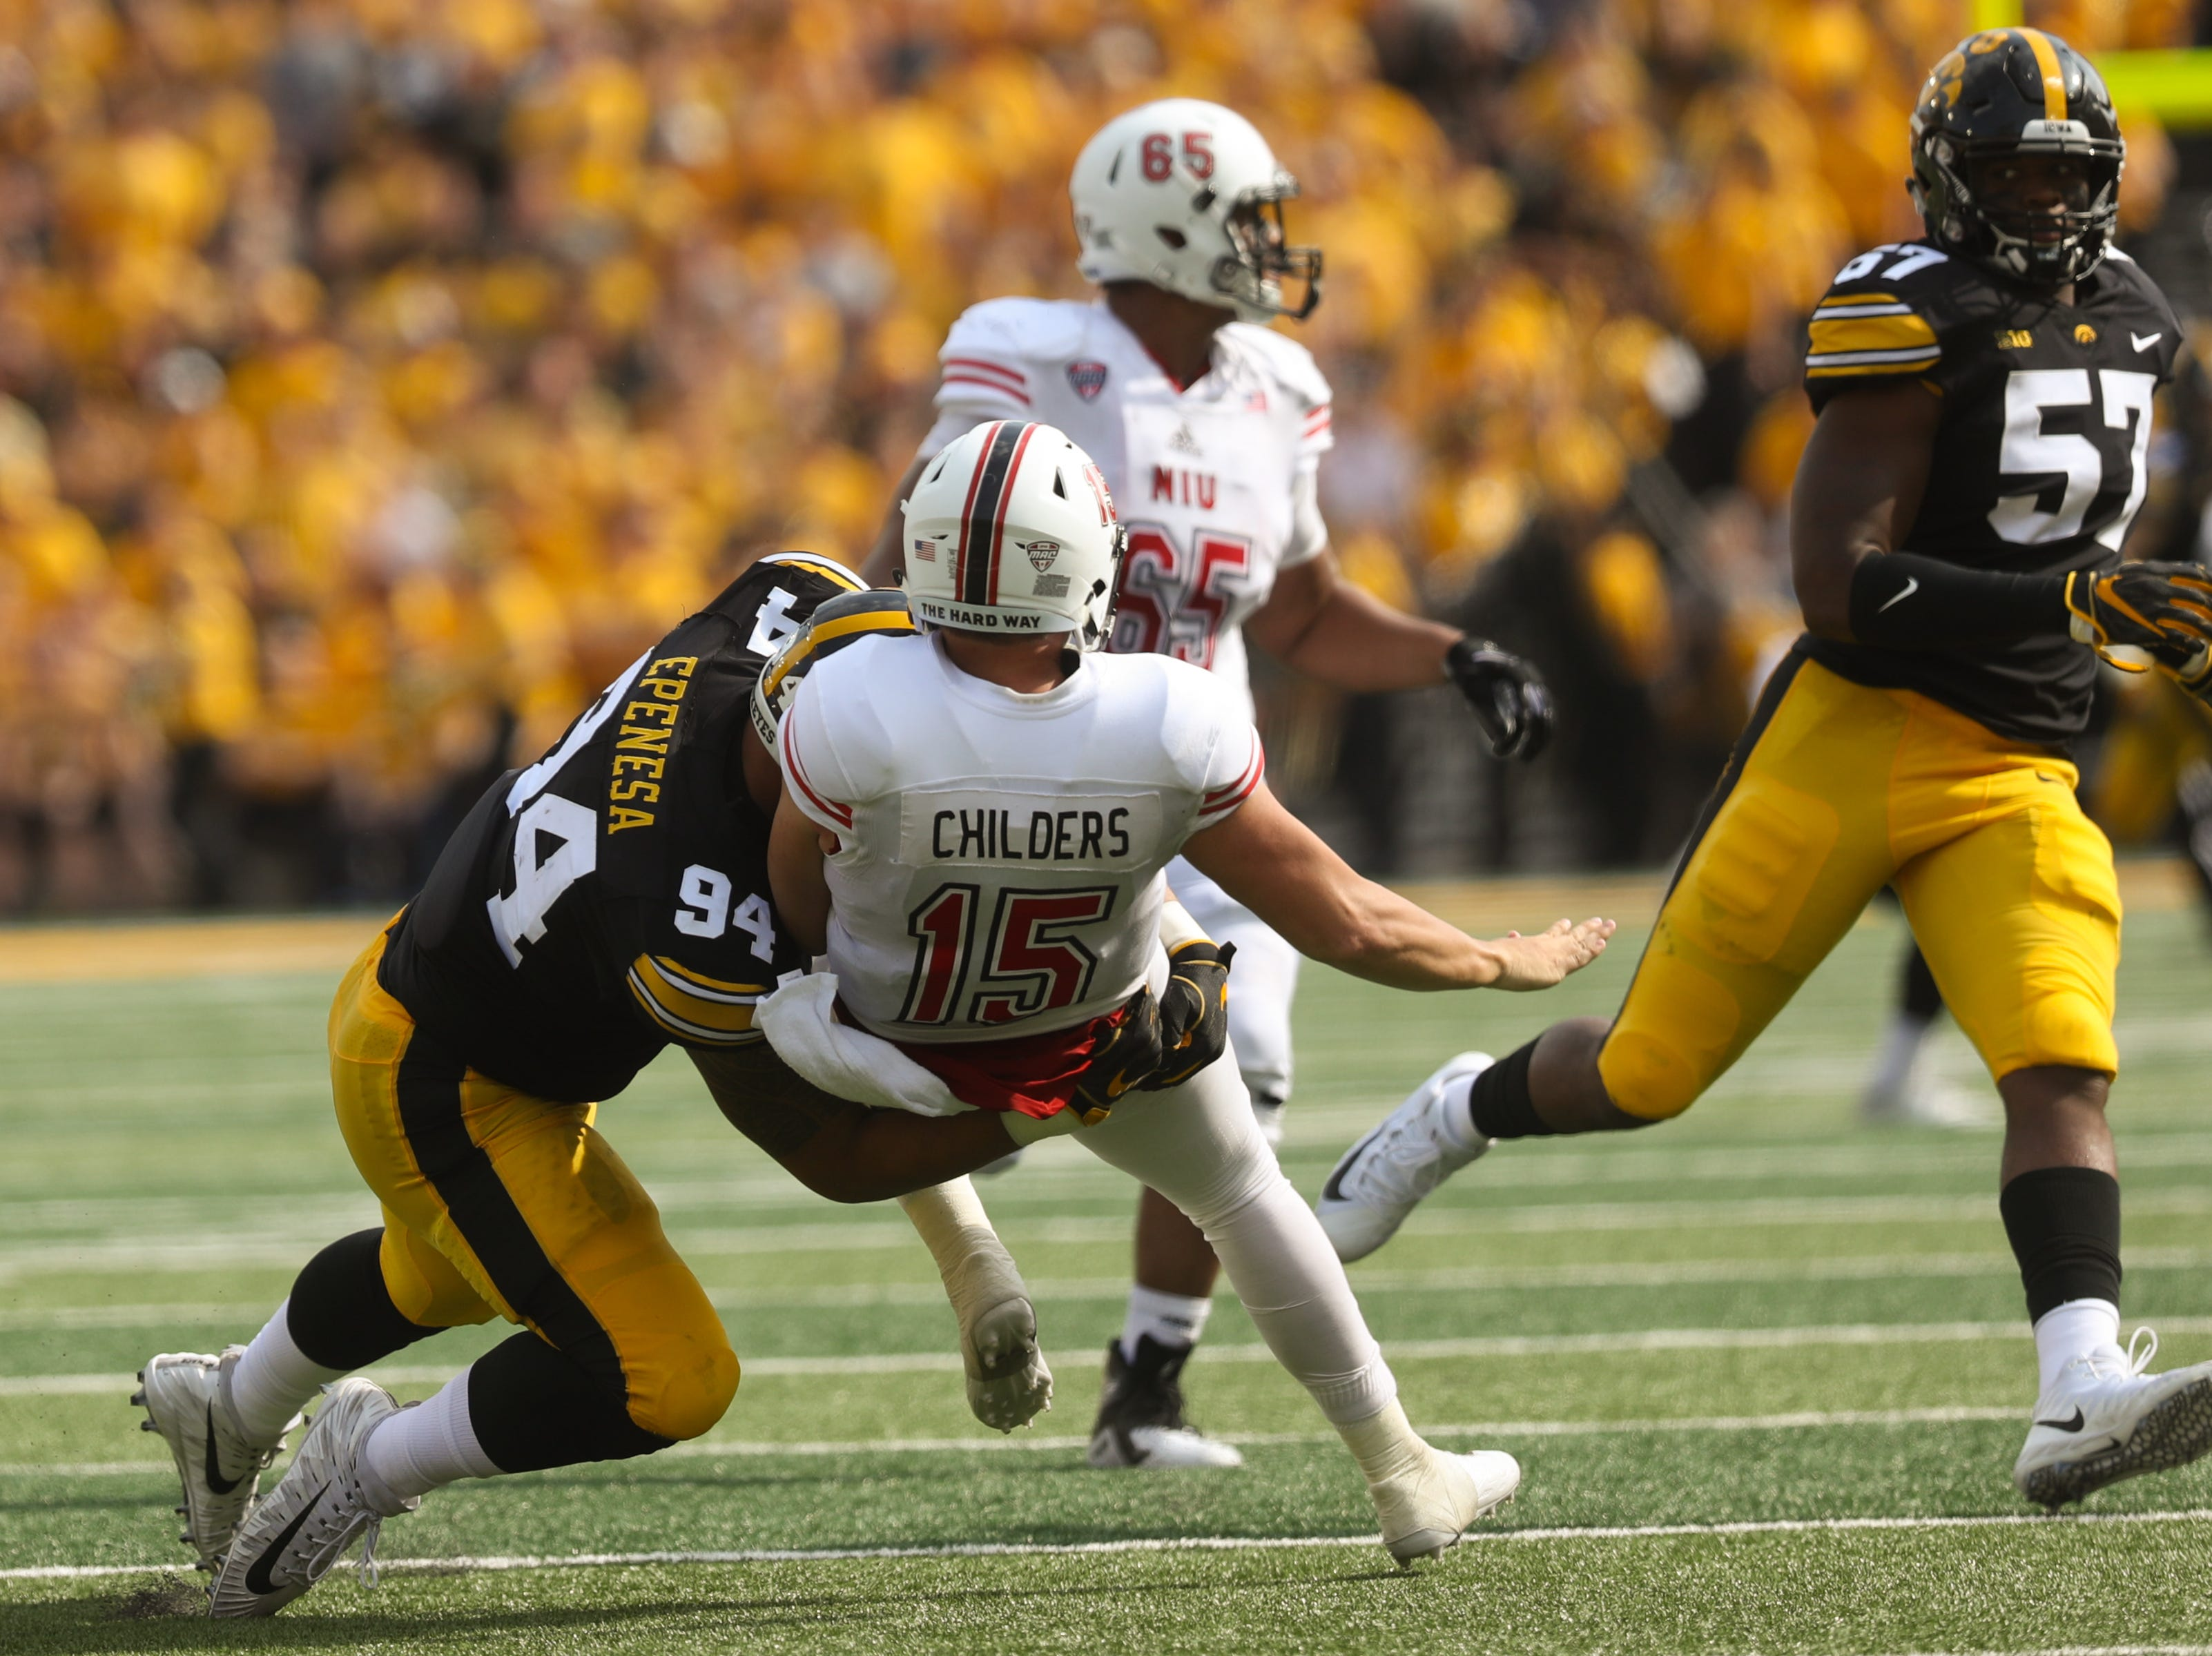 Iowa's A.J. Epenesa puts pressure on Northern Illinois quarterback Marcus Childers during their game at Kinnick Stadium on Satuday, Sept. 1, 2018.